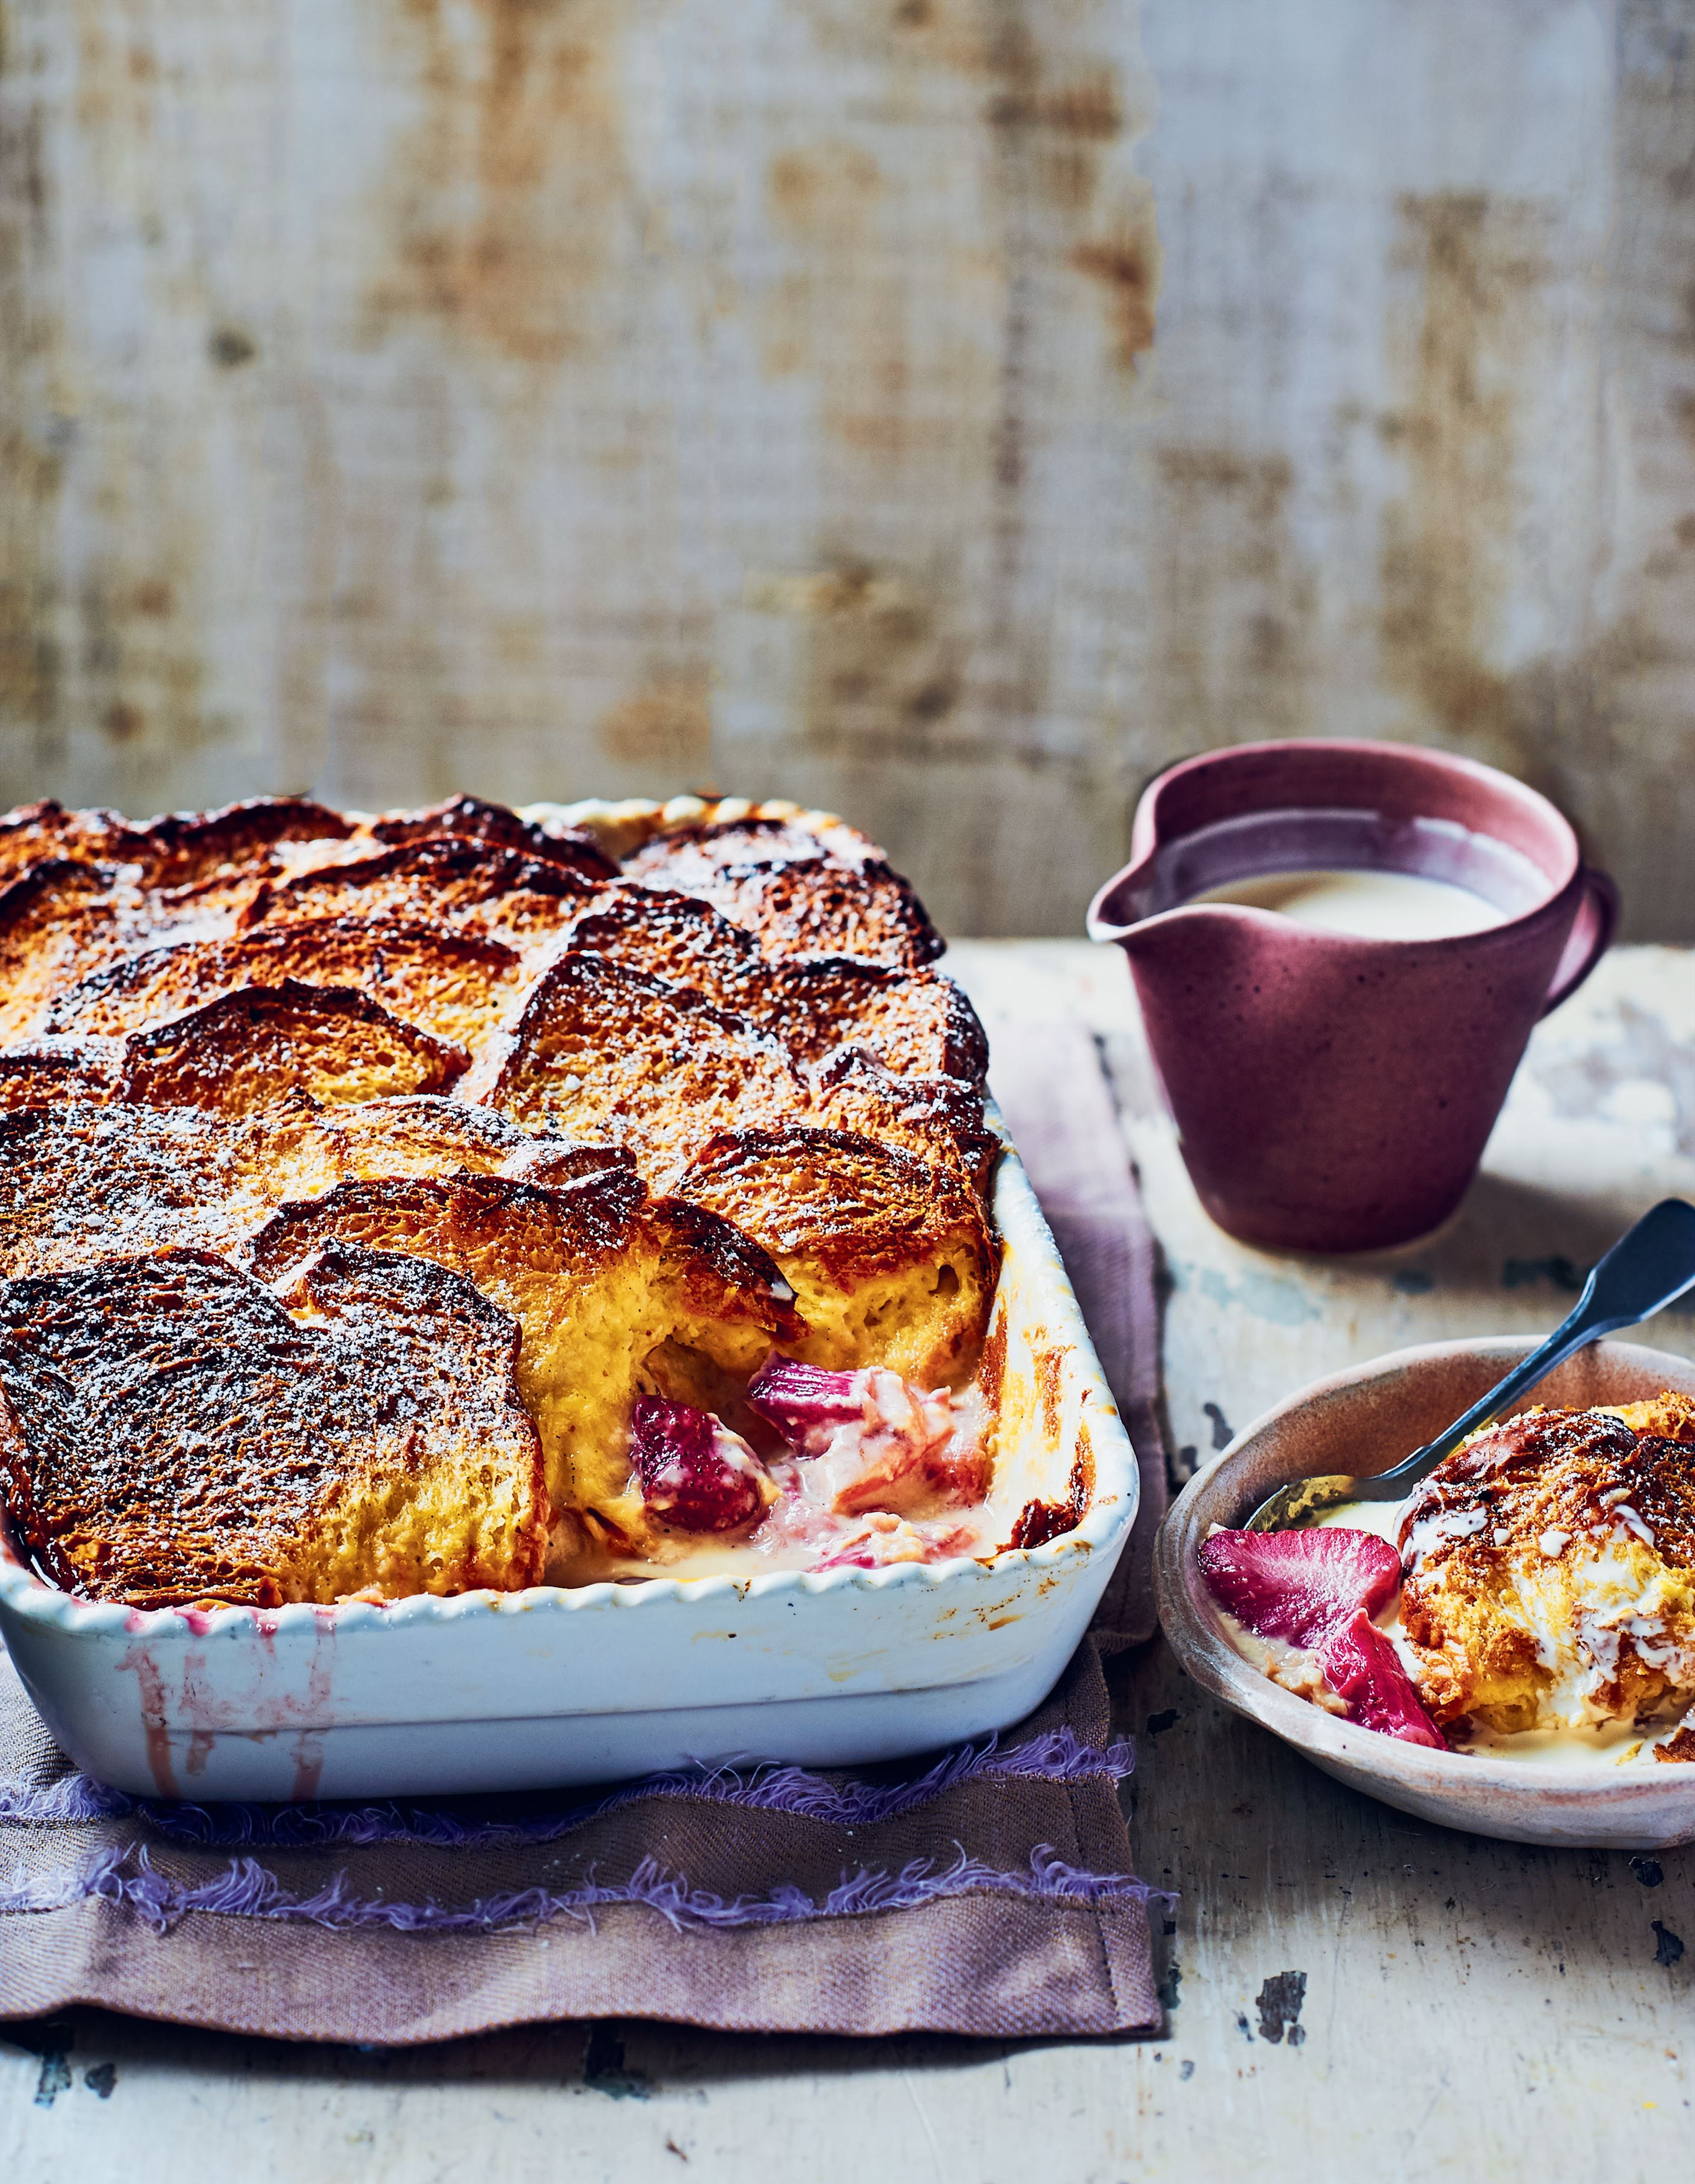 Strawberry and rhubarb brioche pudding